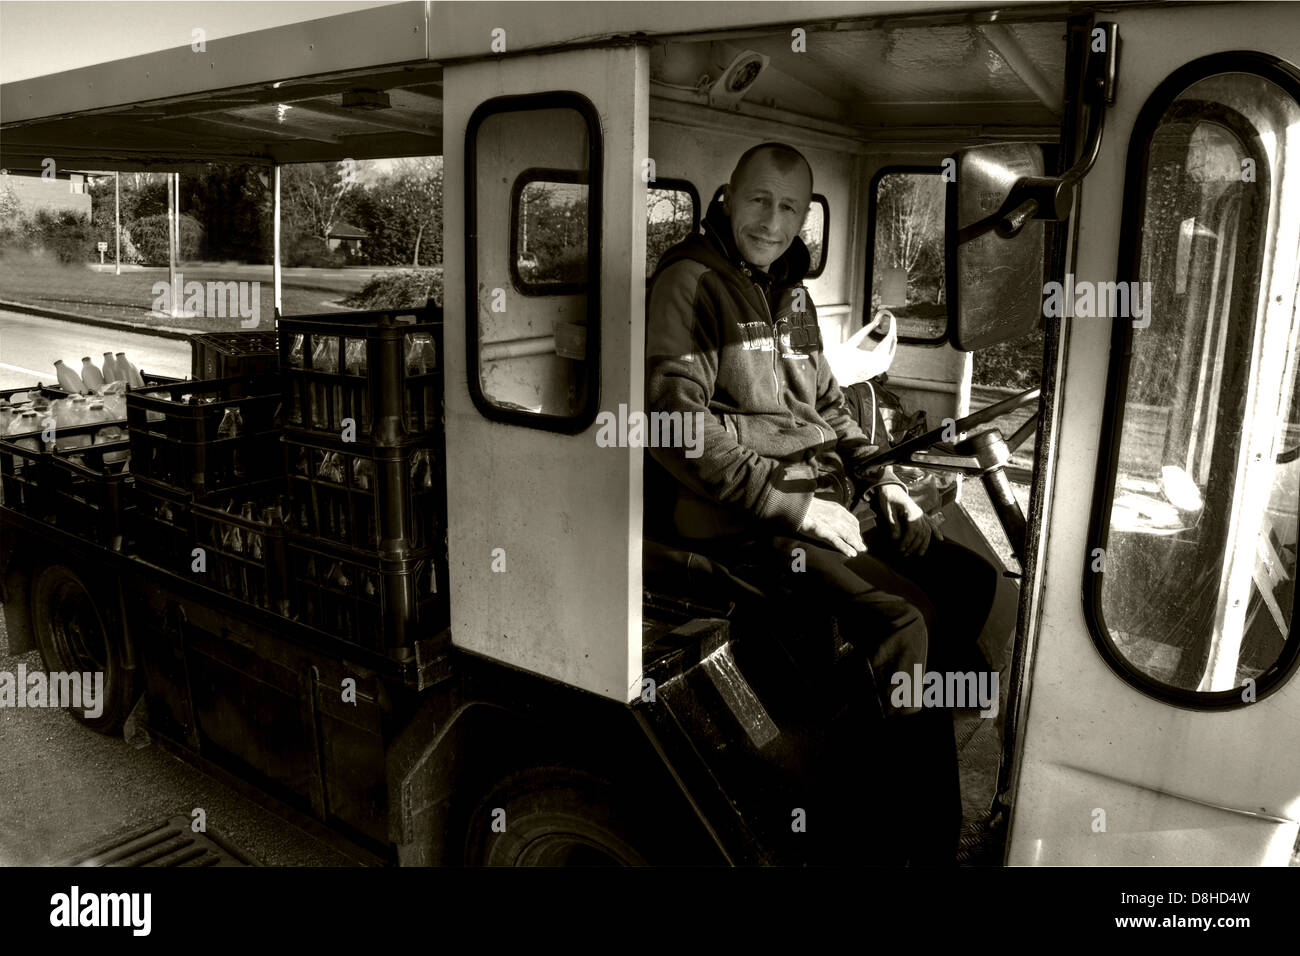 mono,monochrome,B/W,black,and,white,vehicle,electrical,milkman,milk,man,morning,delivery,bottles,cartons,deliveries,morning,eggs,cream,cheese,butter,yogurt,or,soft,drinks,float,fresh,local,dairies,dairy,Morrison-Electricar,Smiths,Wales,&,Edwards,Osborne,Harbilt,Brush,Bedford,and,British,Leyland,gotonysmith,Bluebird,Automotive,unigate,Dairy,Crest,united,dairies,Buy Pictures of,Buy Images Of